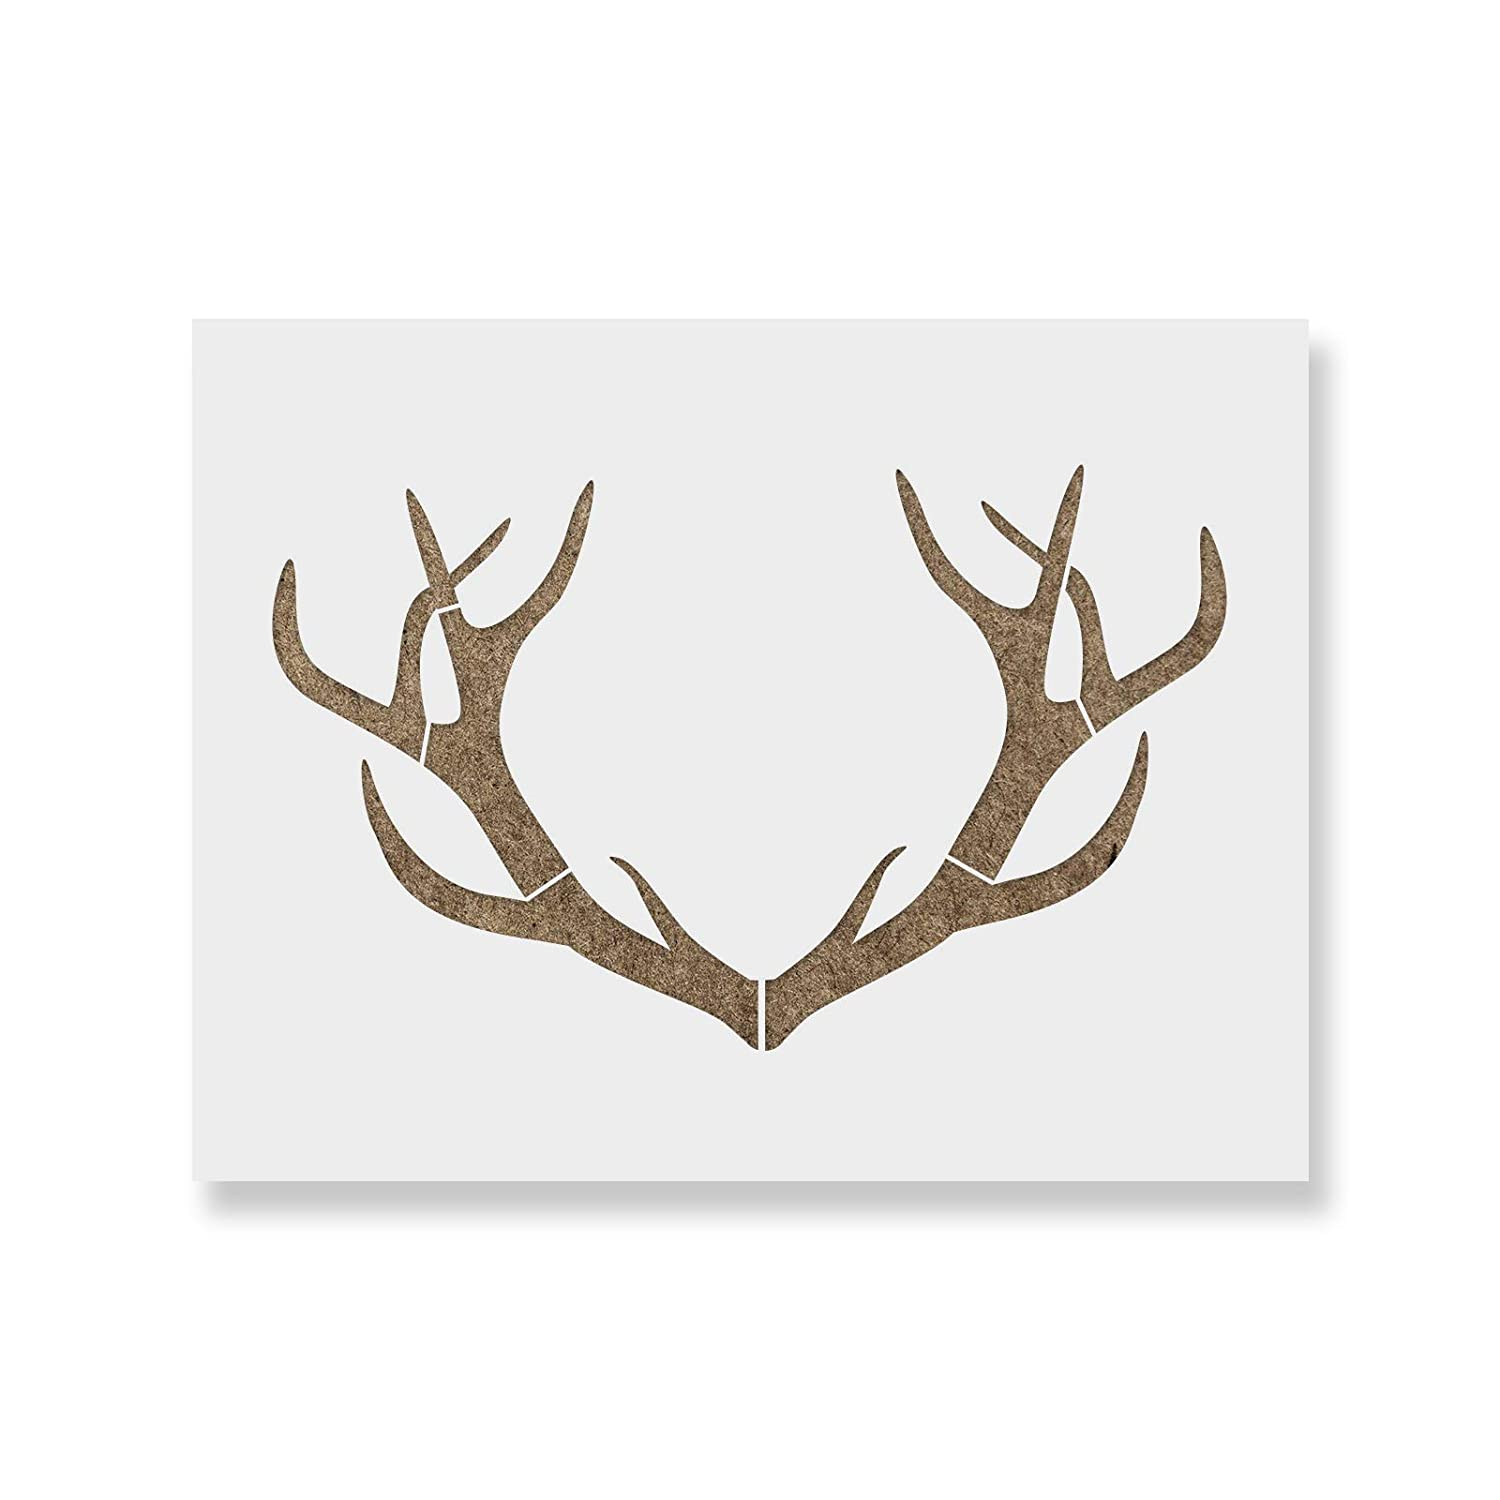 graphic about Deer Antler Printable Template called Deer Antlers Stencil Template - Reusable Stencil of Deer Antlers with Many Measurements Offered